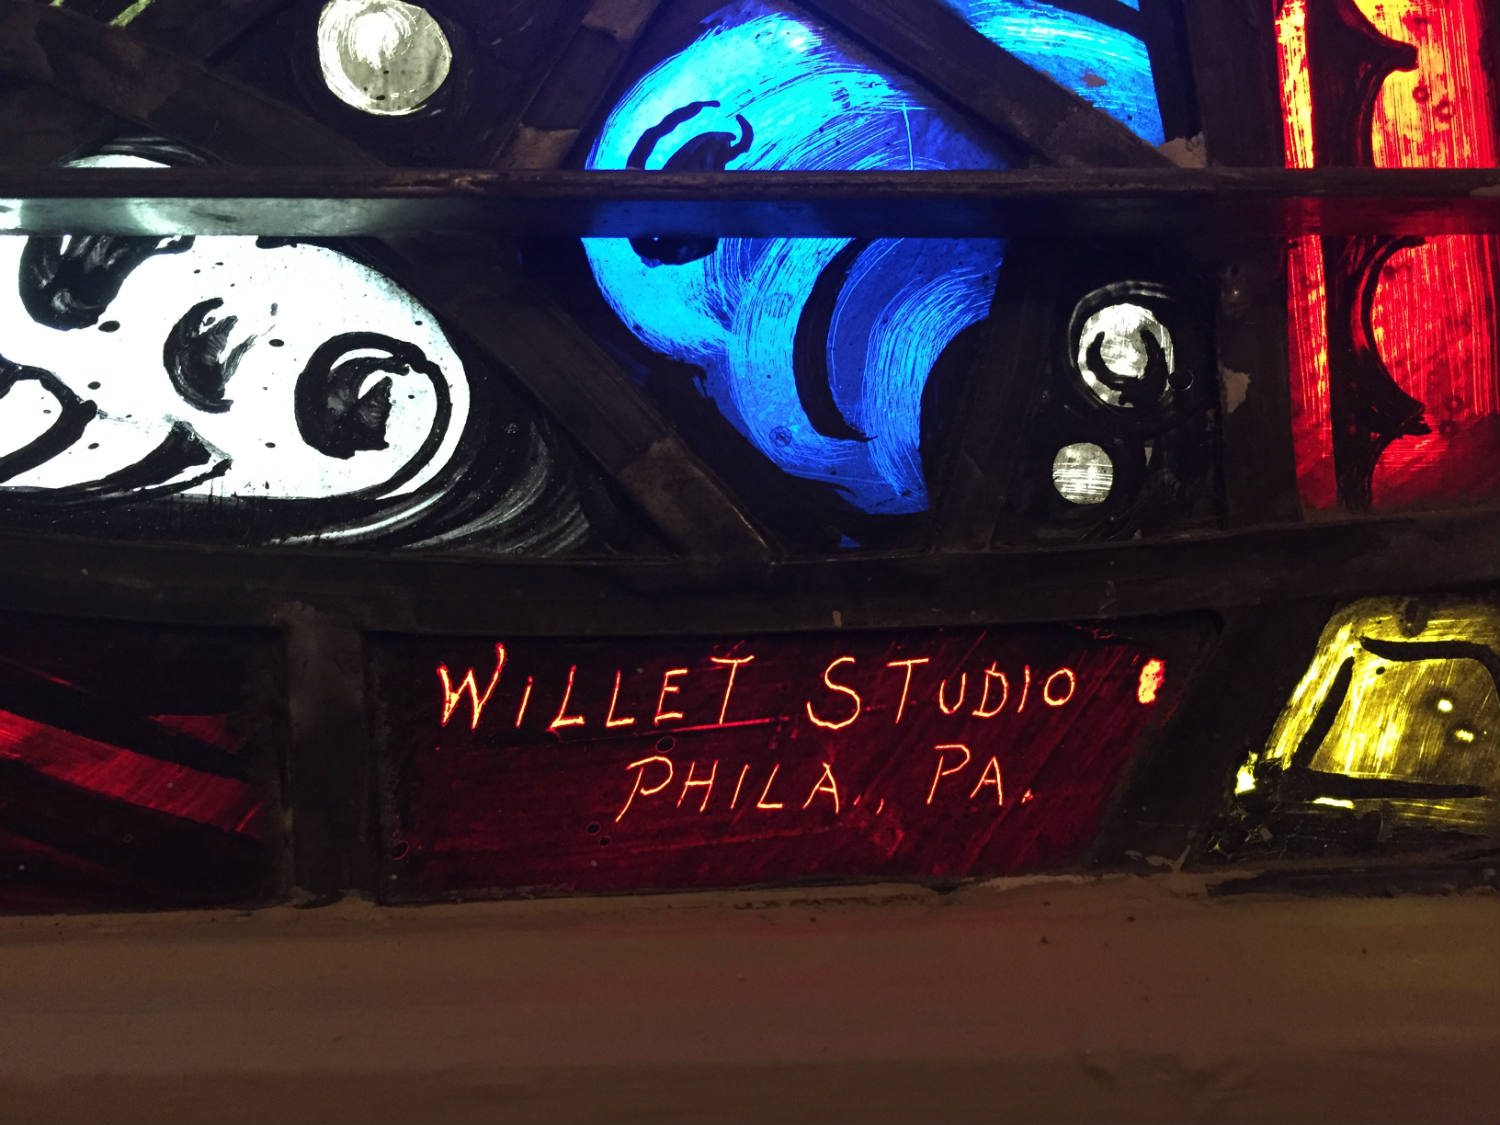 Willet Stained Glass Studio Signature on Window in Rochester, NY